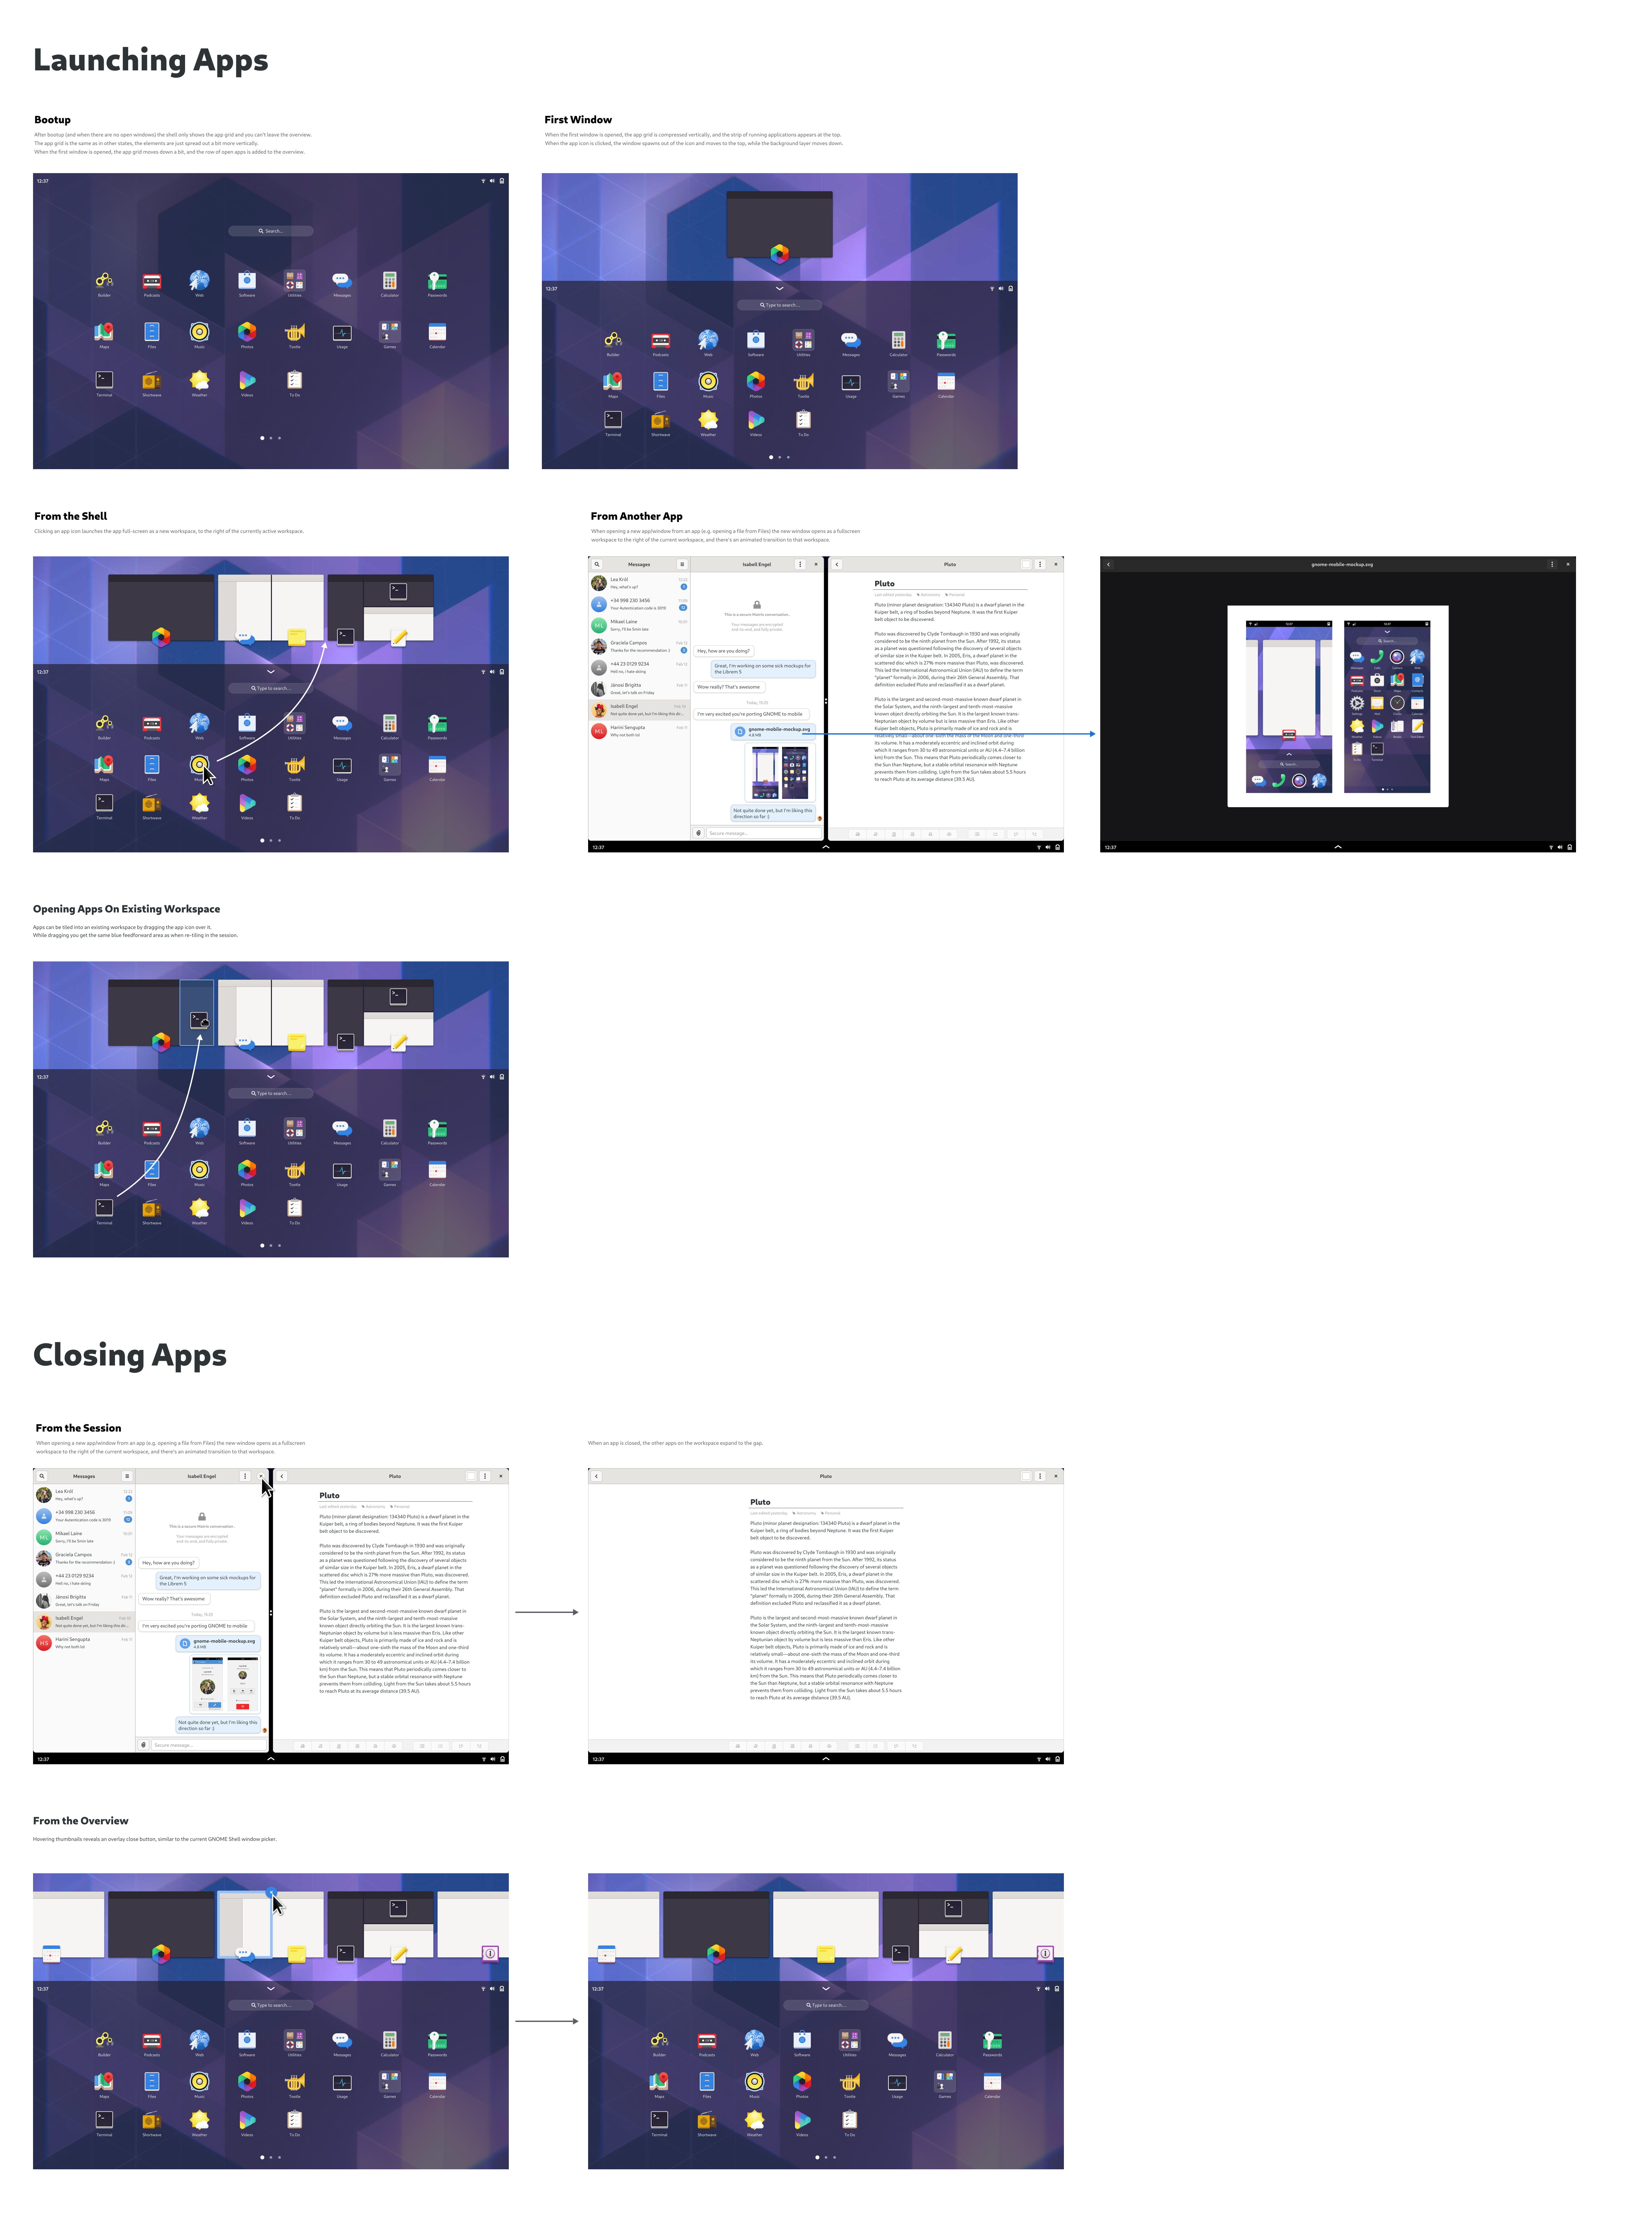 mobile-shell/tiling/tiling-launch-close.png